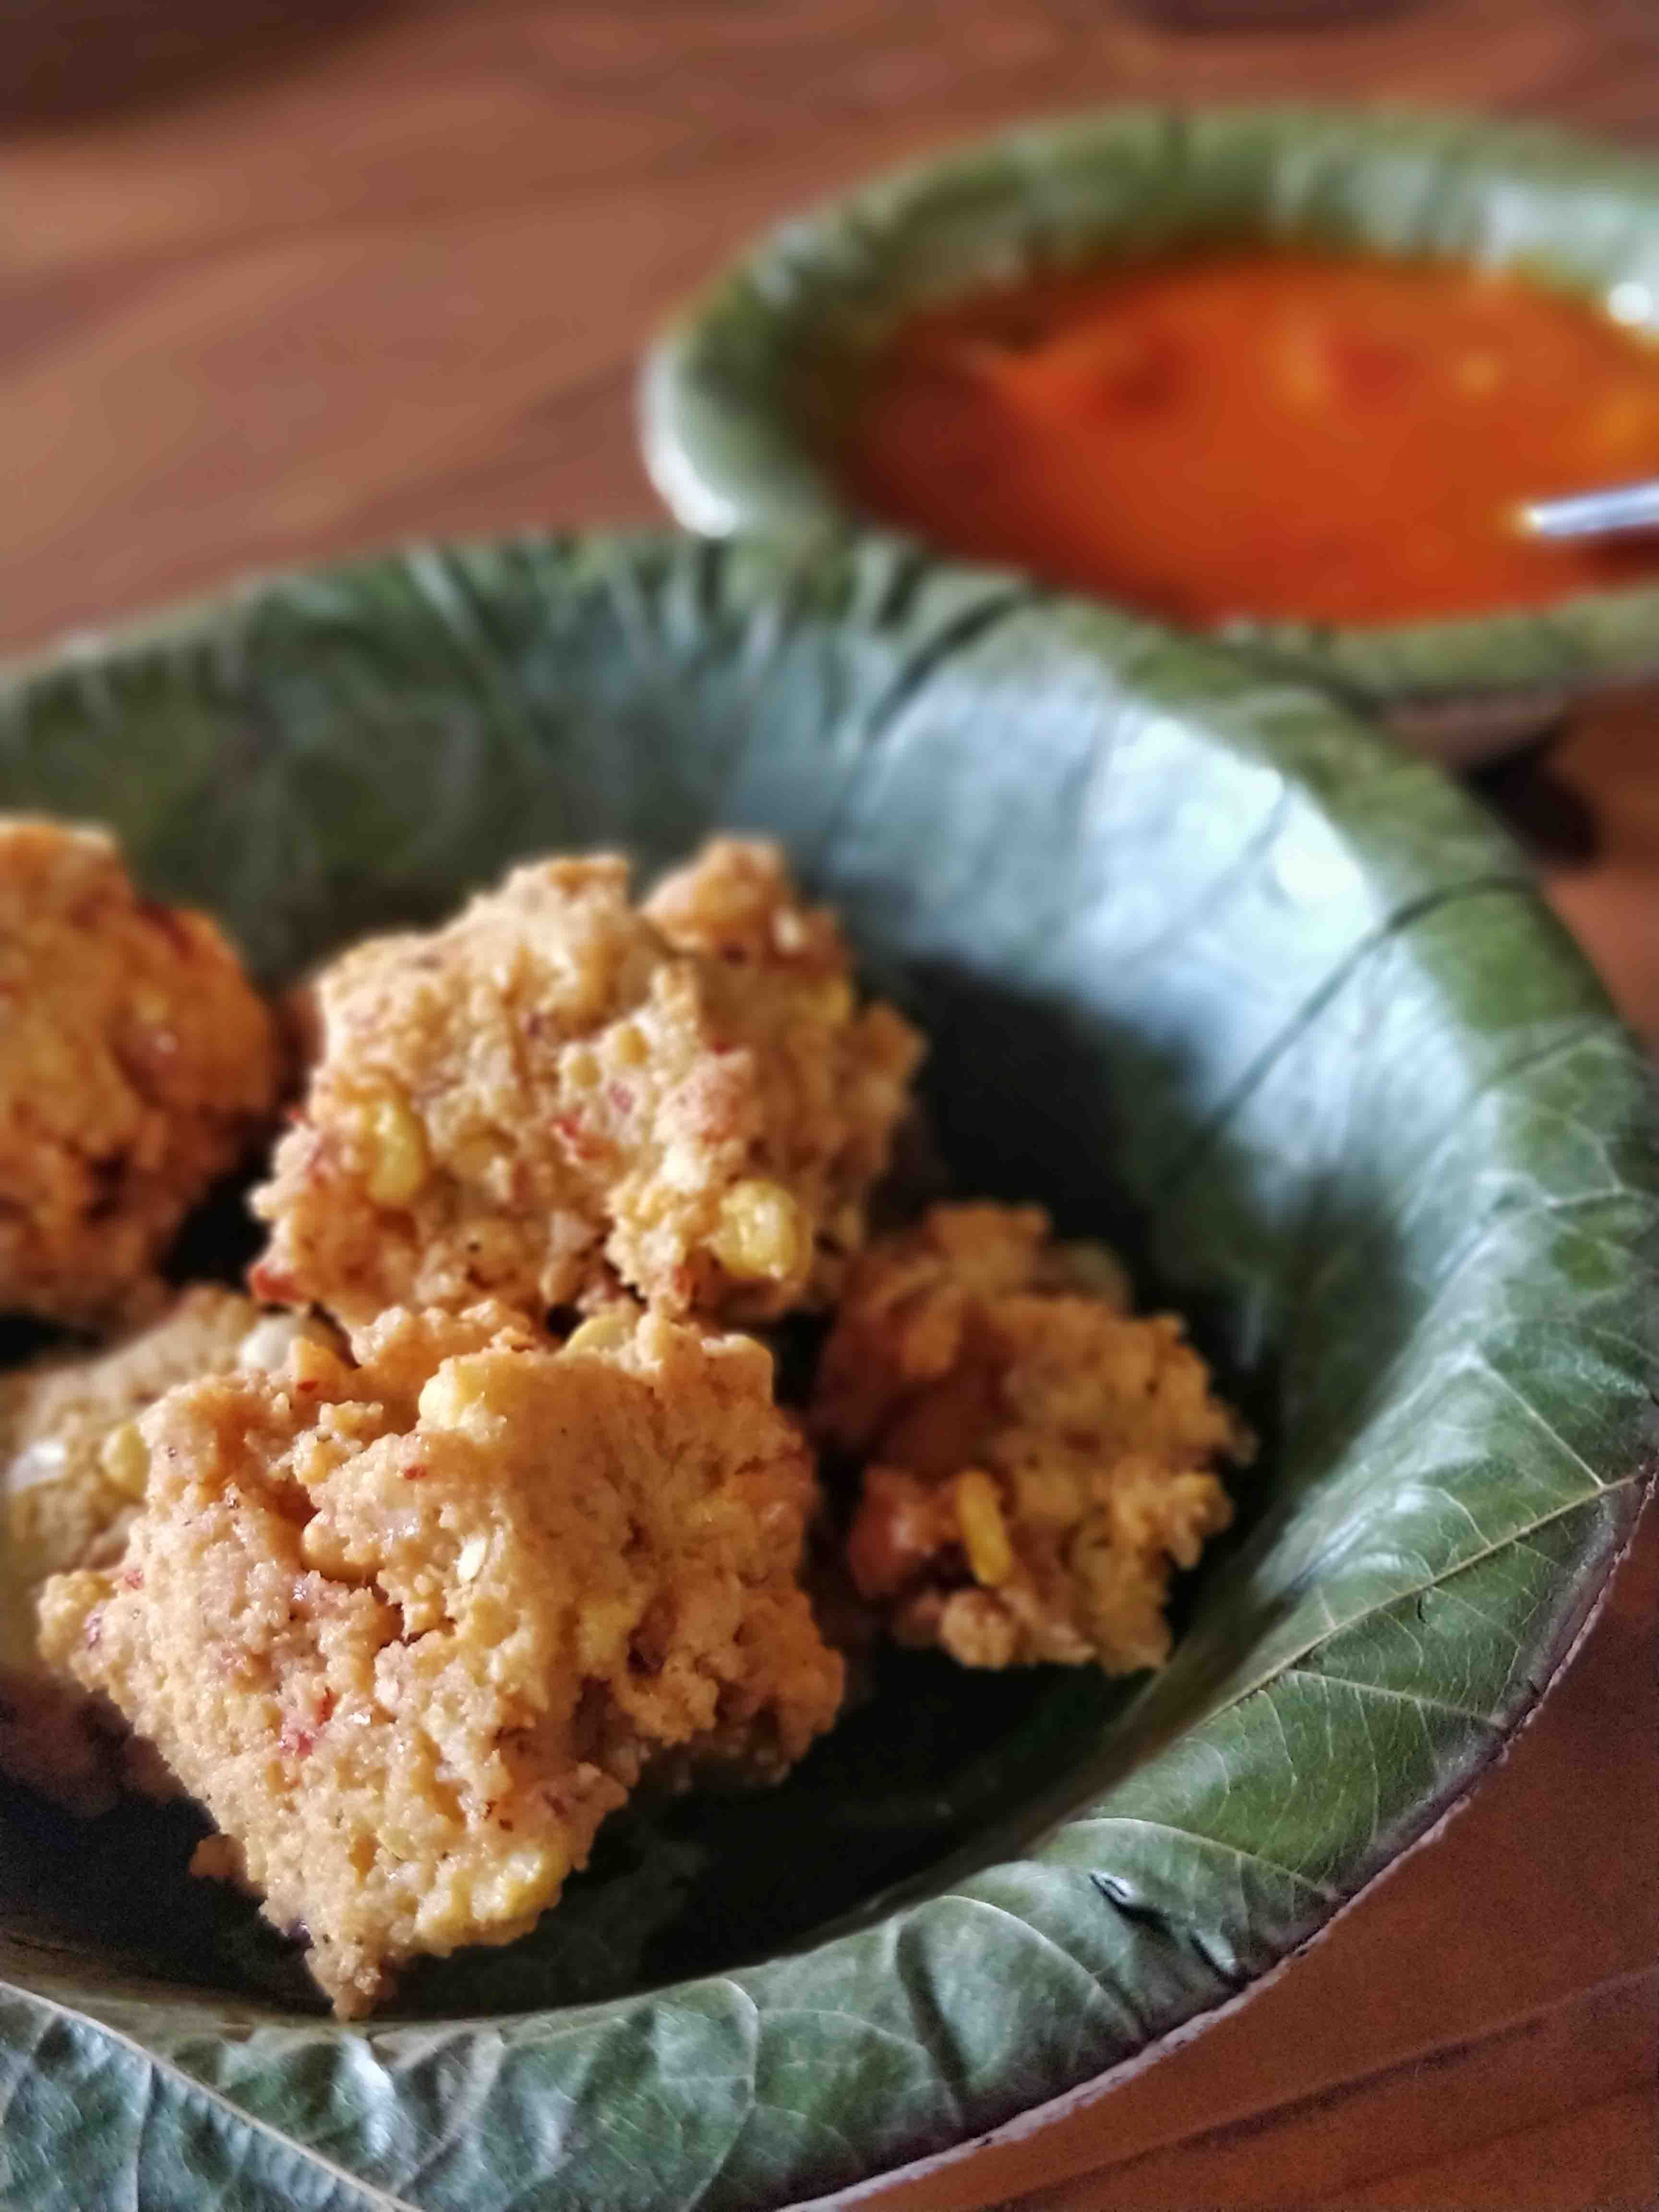 Top 5 things to eat In Jashpur : Kritivity's Food Trail